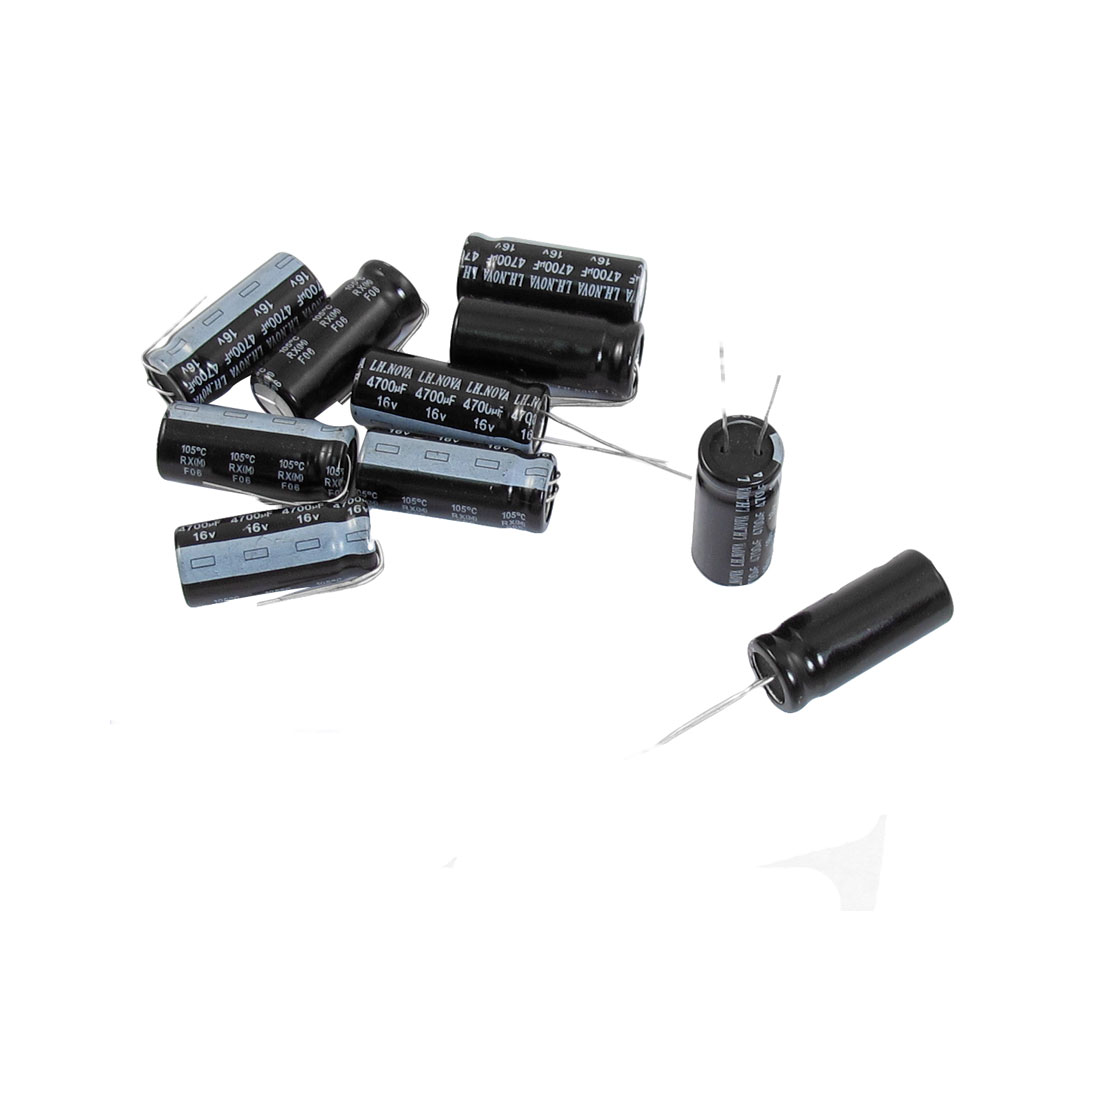 10 Pcs 4700uF 16V 13mm x 30mm Aluminum Electrolytic Capacitors